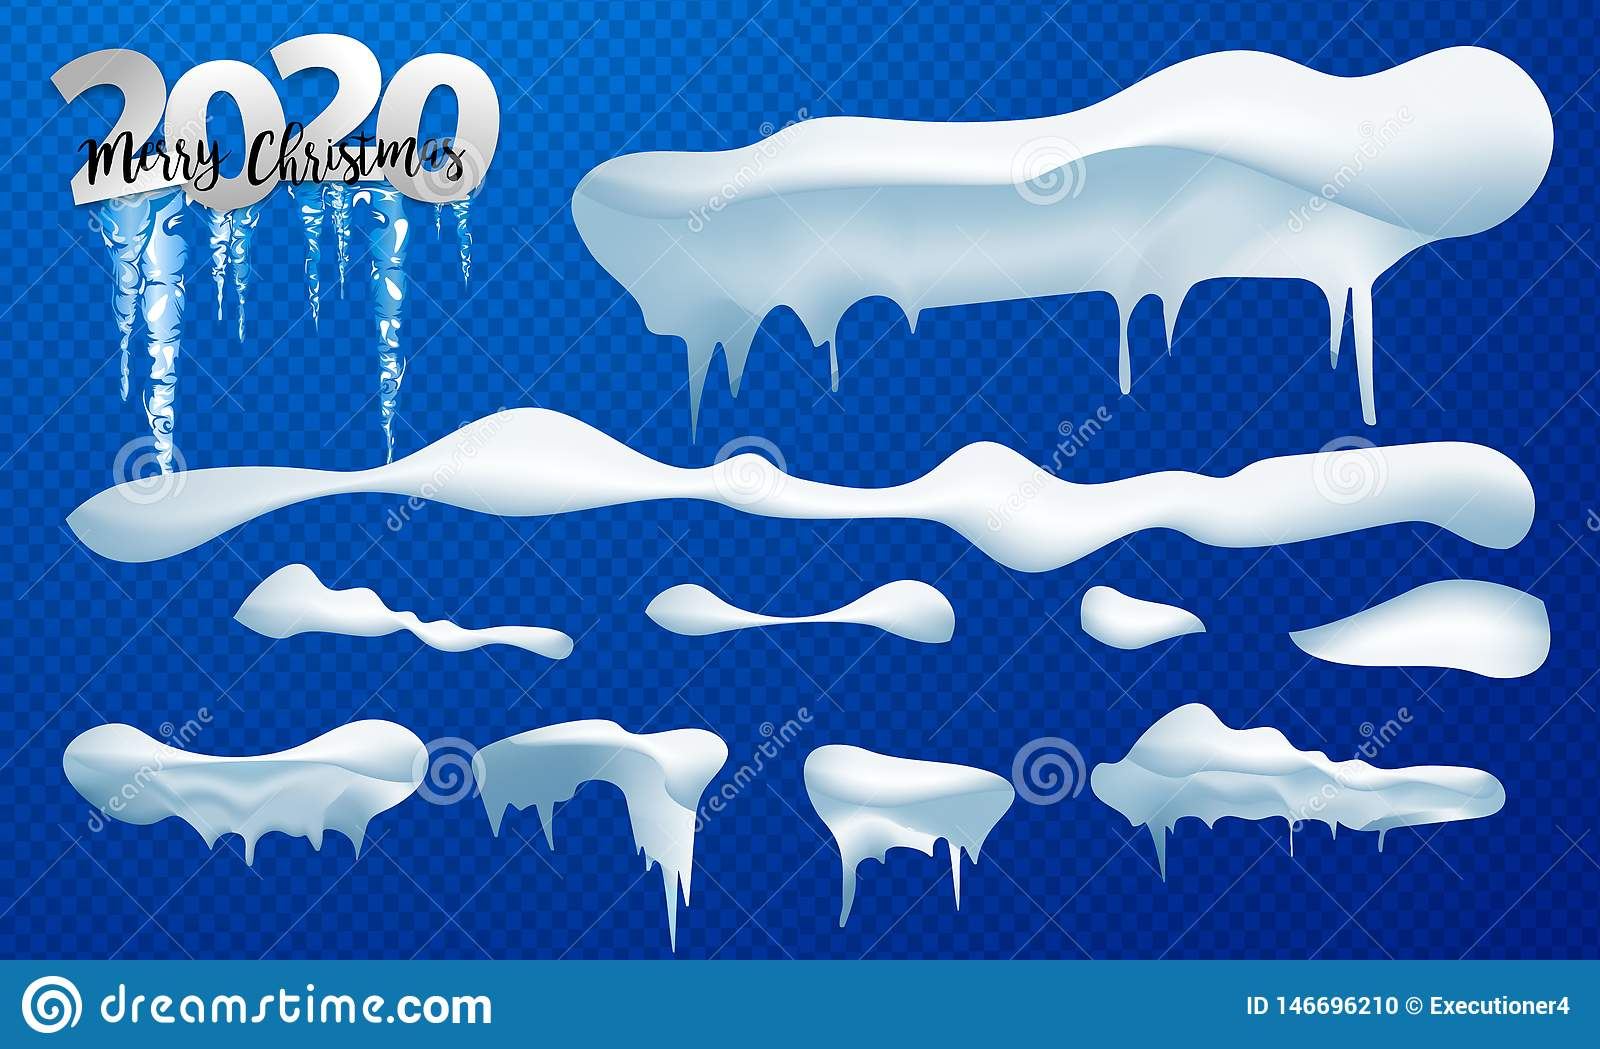 2020 Snow caps, snowballs and snowdrifts set. Snow cap vector collection. Winter decoration element. Snowy elements on winter